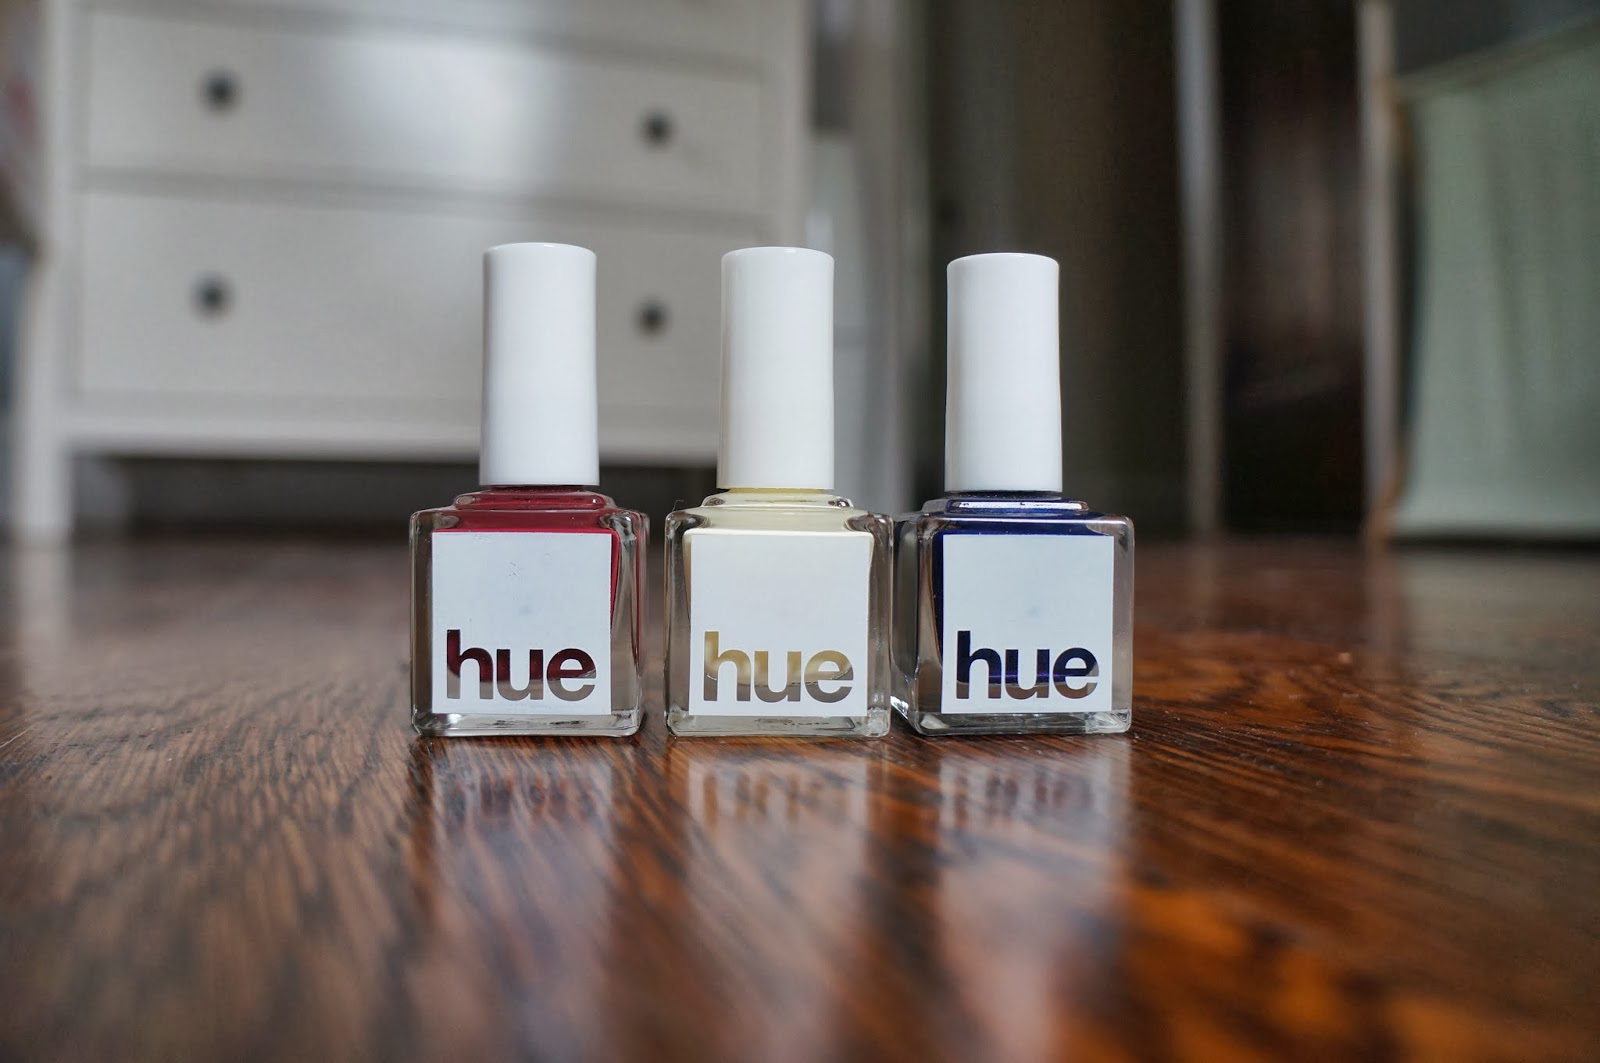 Square Hue January 2014 review